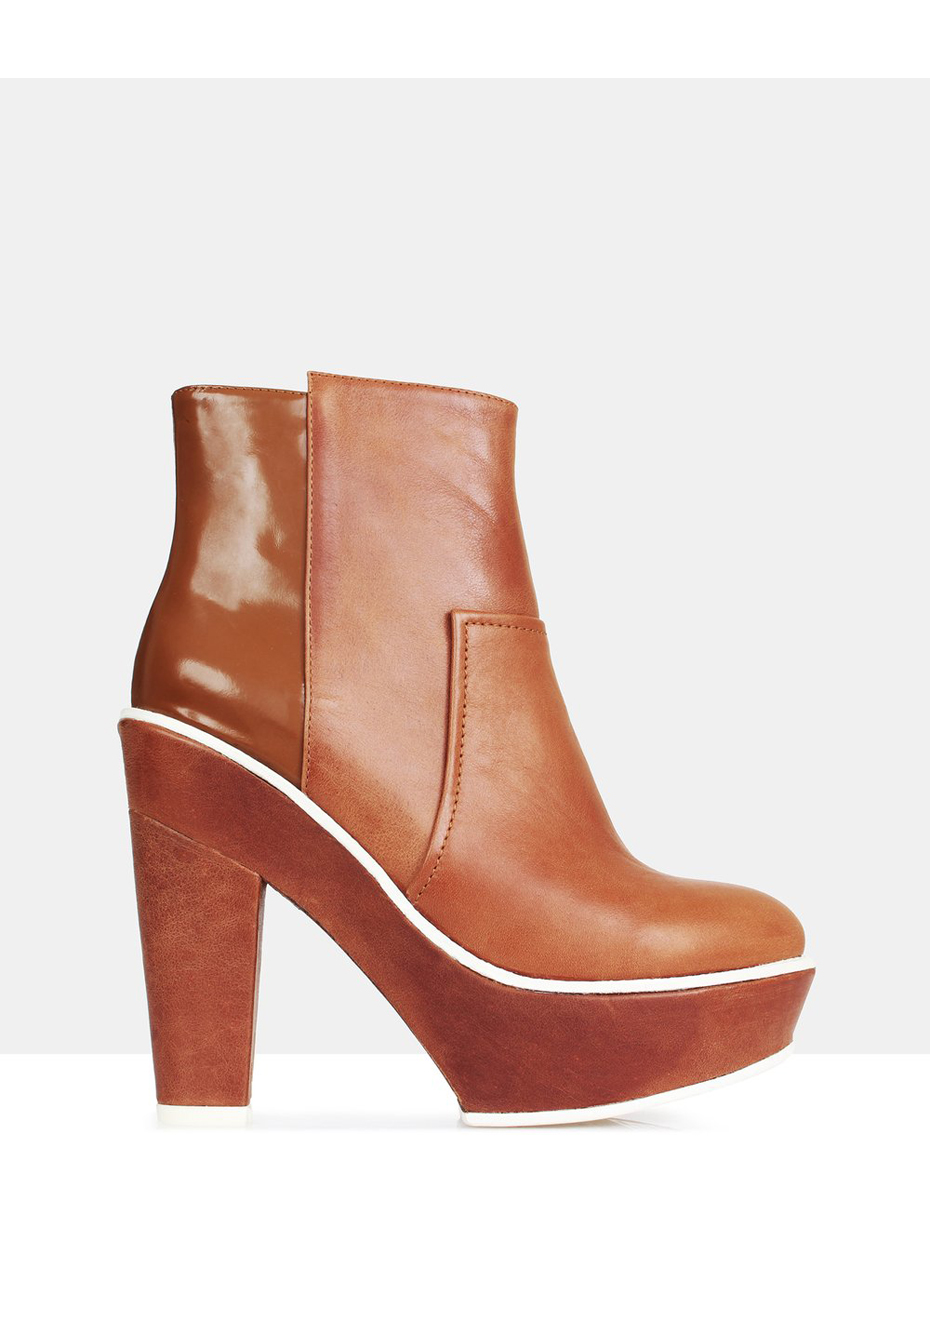 Beau Coops Scand Tan Ankle Boots Women GH92263